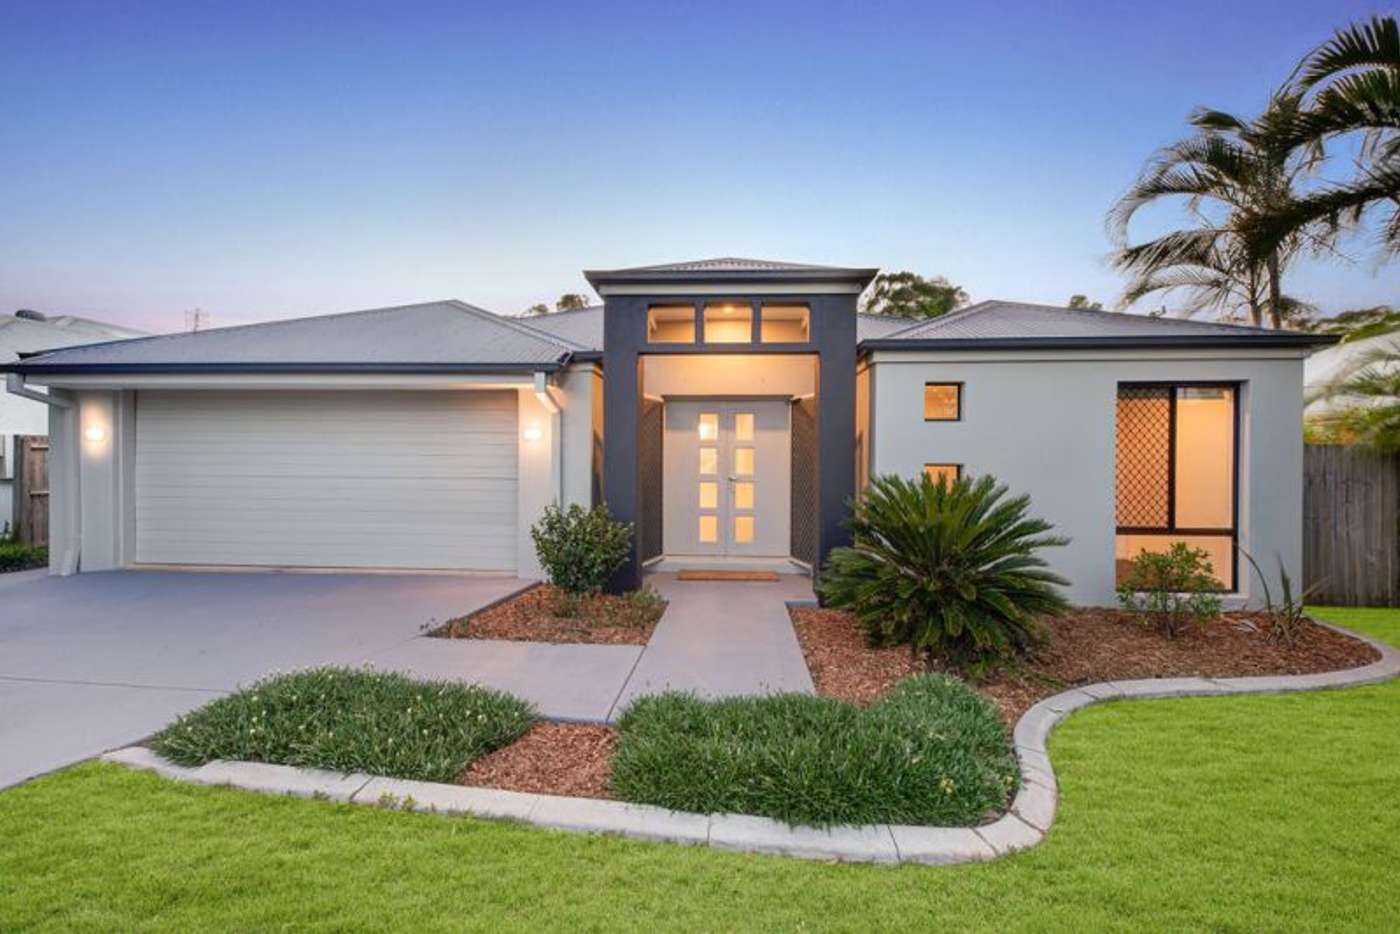 Main view of Homely house listing, 10 Dornoch Way, Peregian Springs QLD 4573